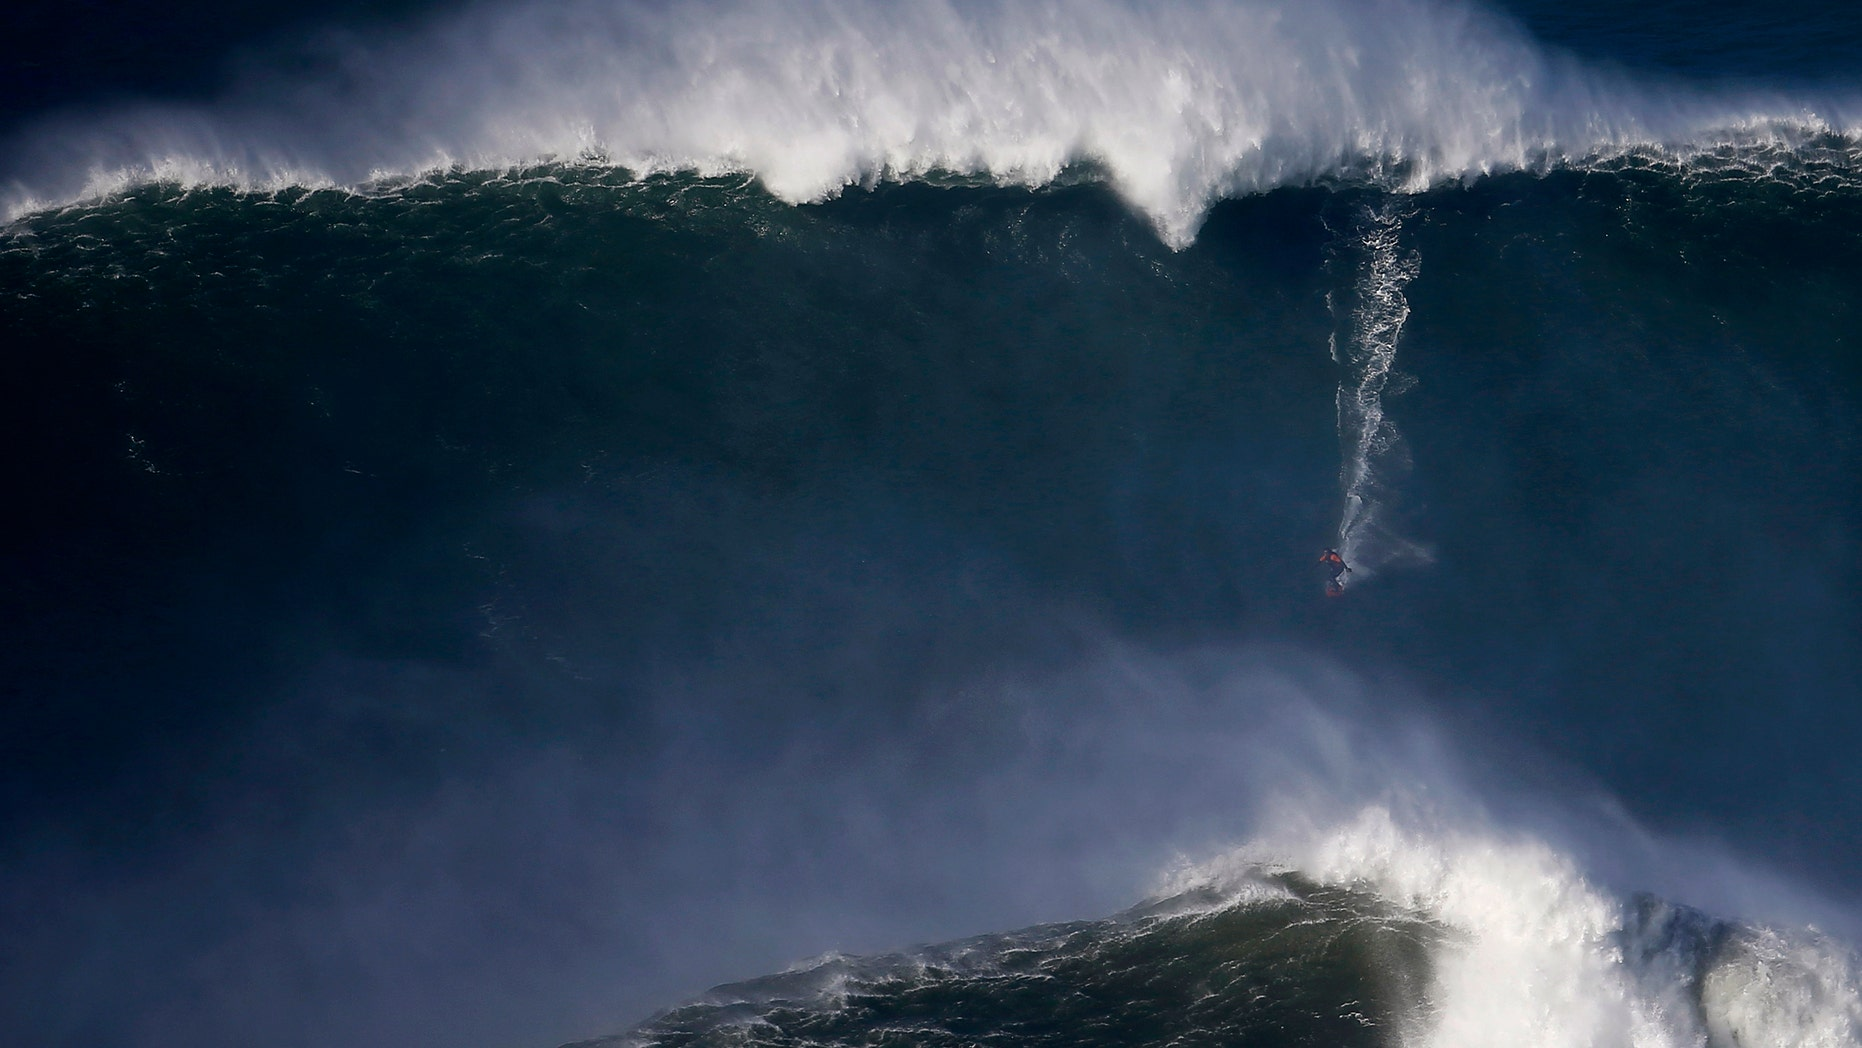 File photo - A surfer drops in on a large wave at Praia do Norte, in Nazare Dec. 11, 2014.